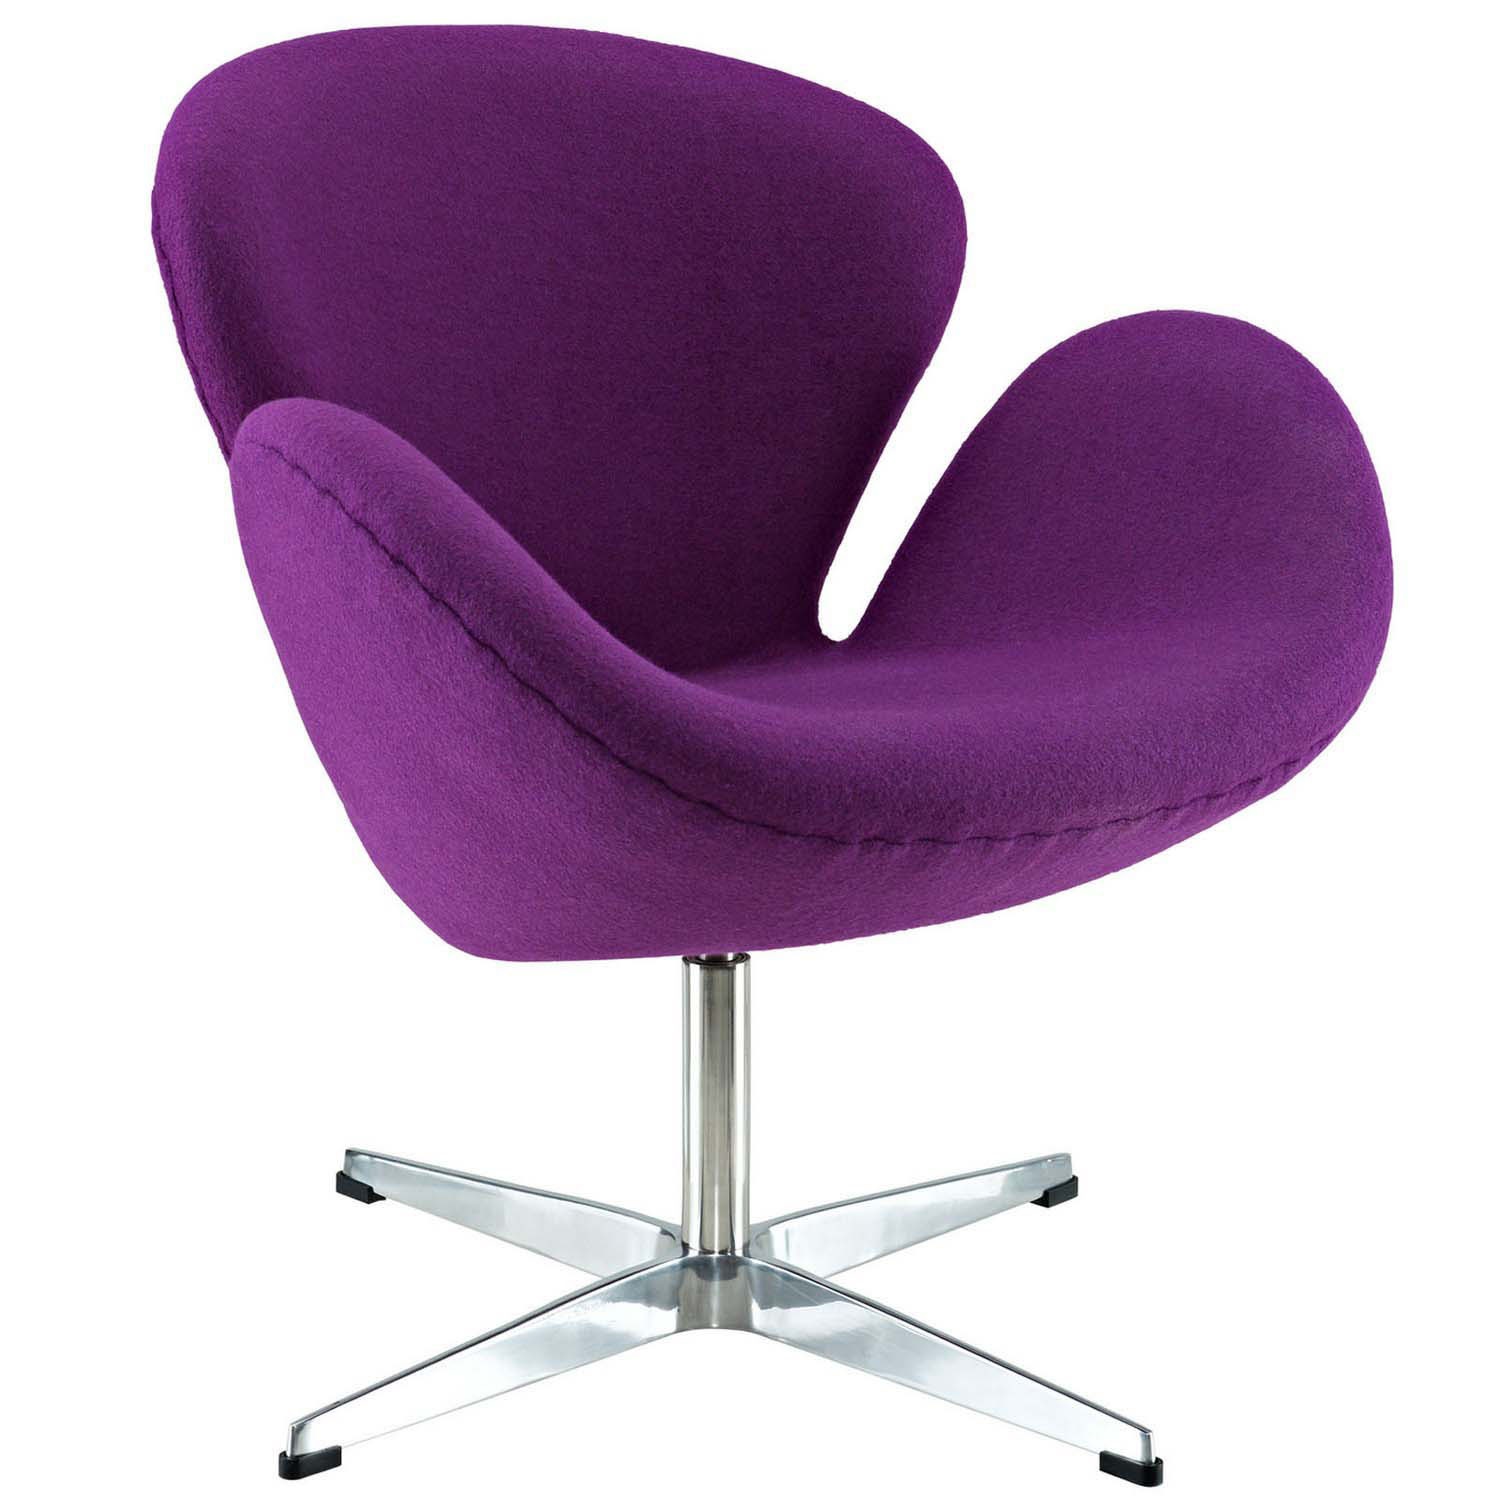 Modway Wing Lounge Chair - Purple